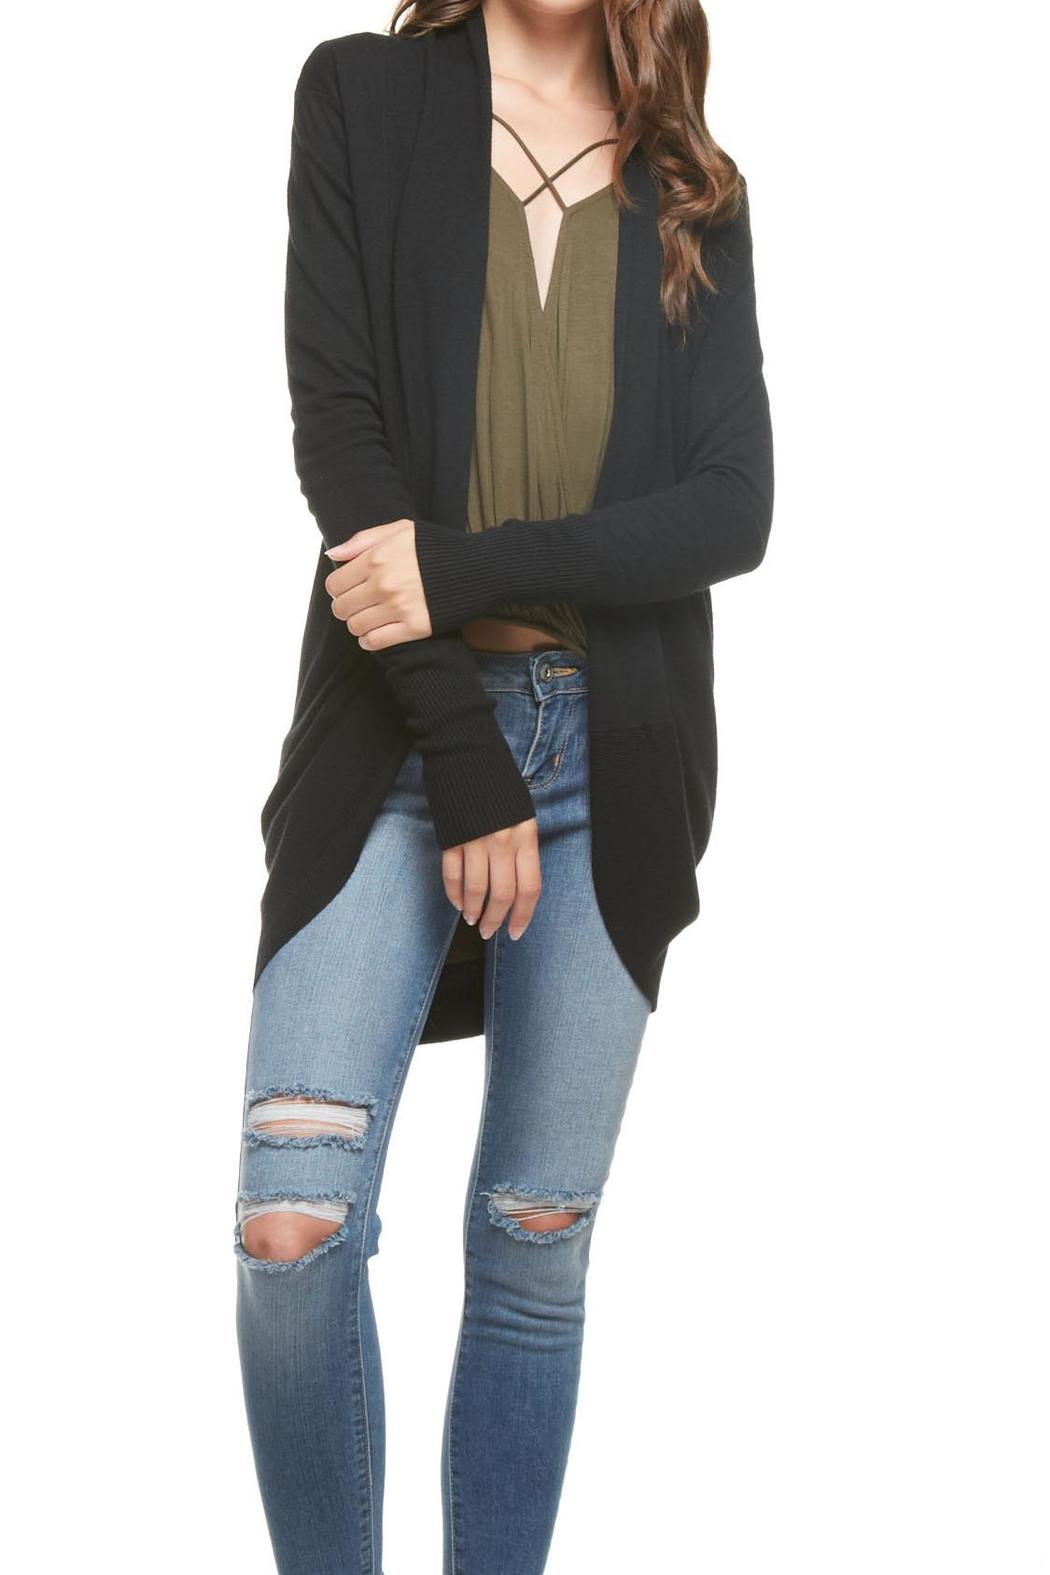 1365827856814 Dreamers Black Cardigan from Kansas by Apricot Lane - Wichita ...